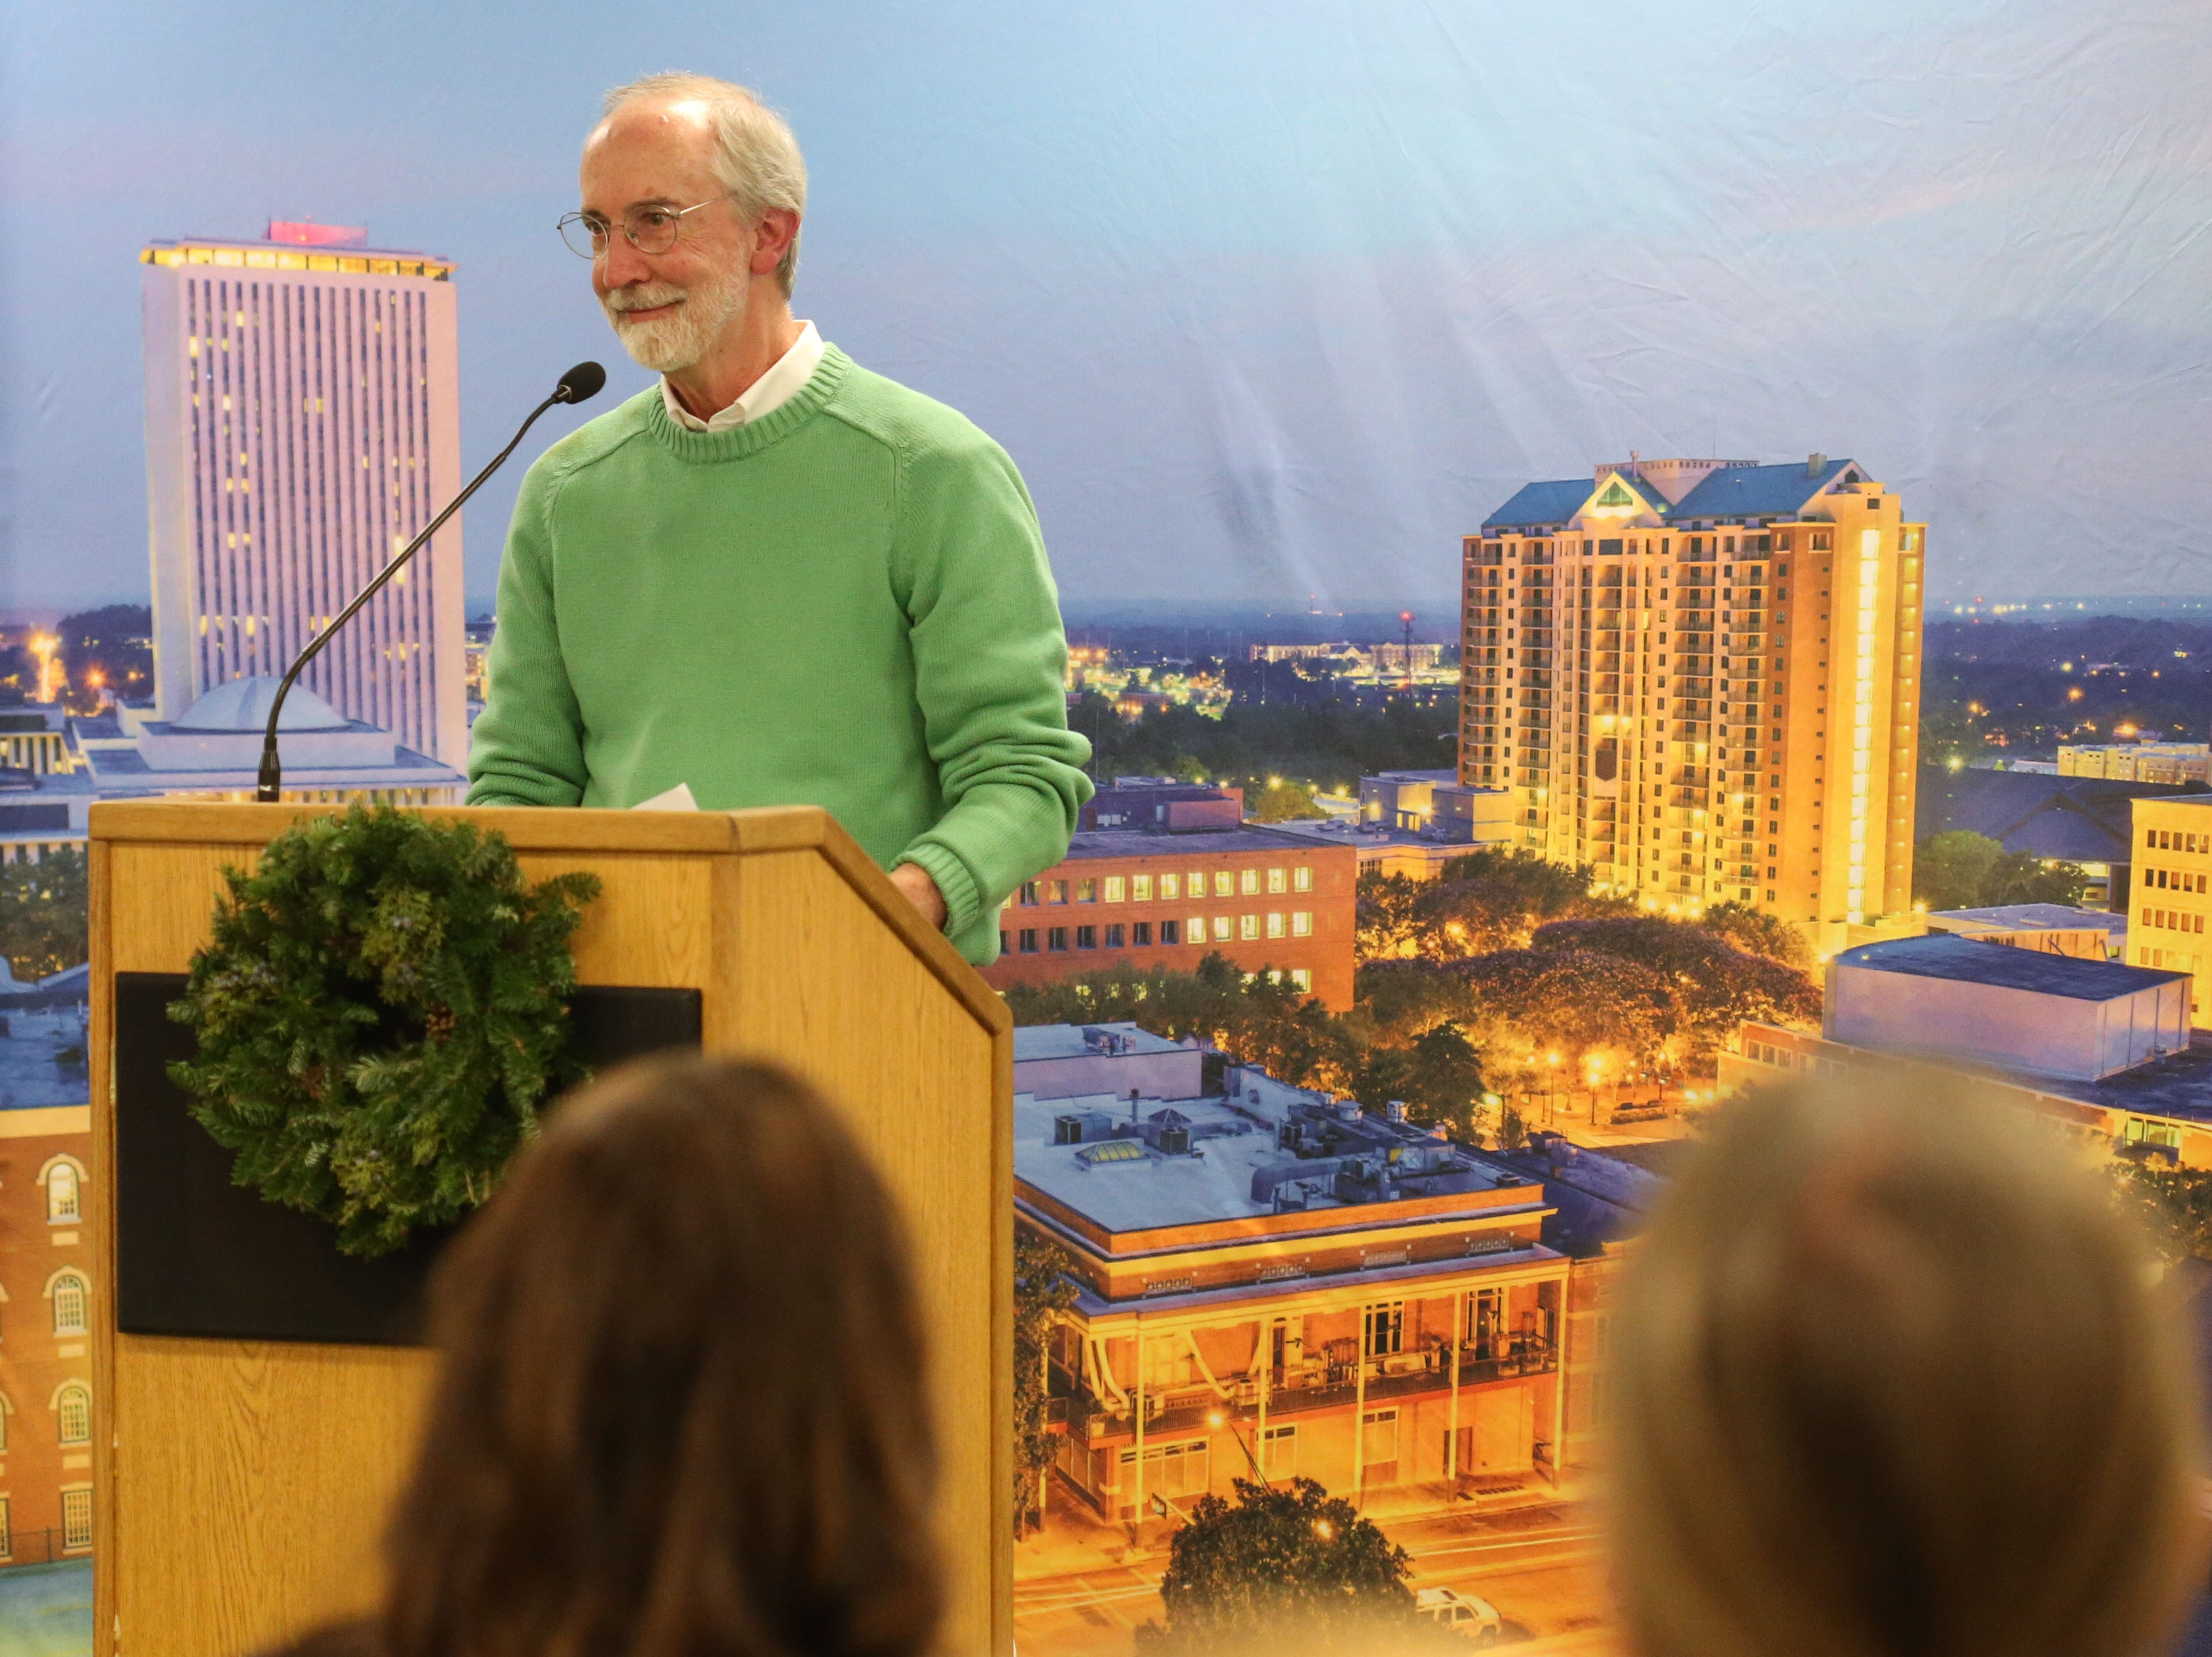 Ron Hartung, assistant director of communications at the Florida State University College of Medicine and former Tallahassee Democrat staff member, speaks at a launch party held at the Tallahassee Democrat for Gerald Ensley's book, 'We Found Paradise,' Thursday, Dec. 6, 2018.